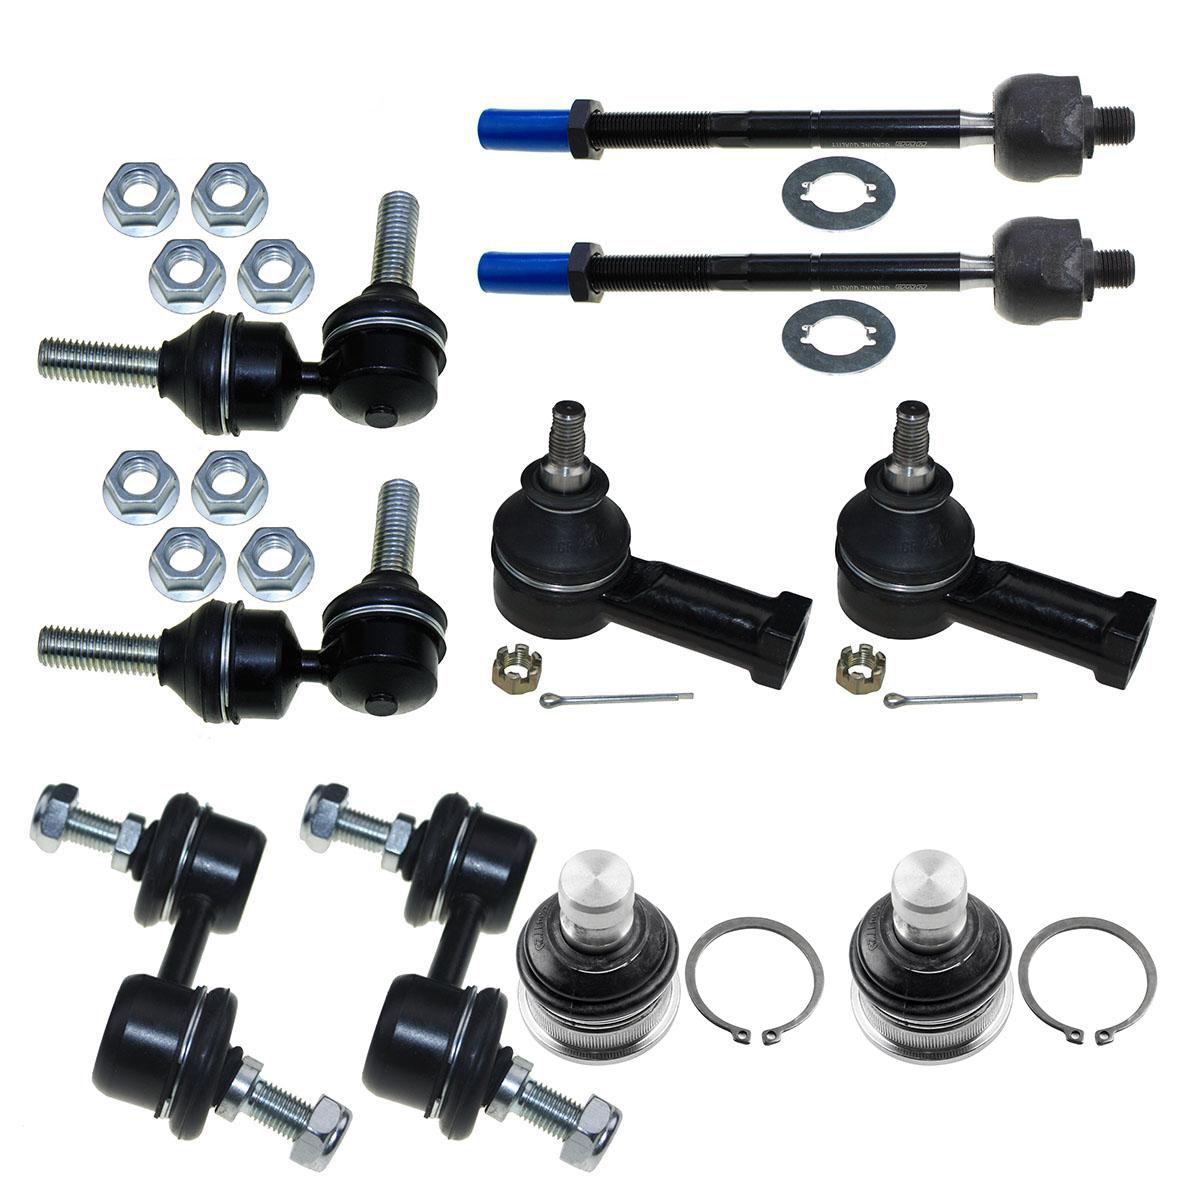 New DLZ Suspension Kit Ball Joint Rear Sway Bar Link For